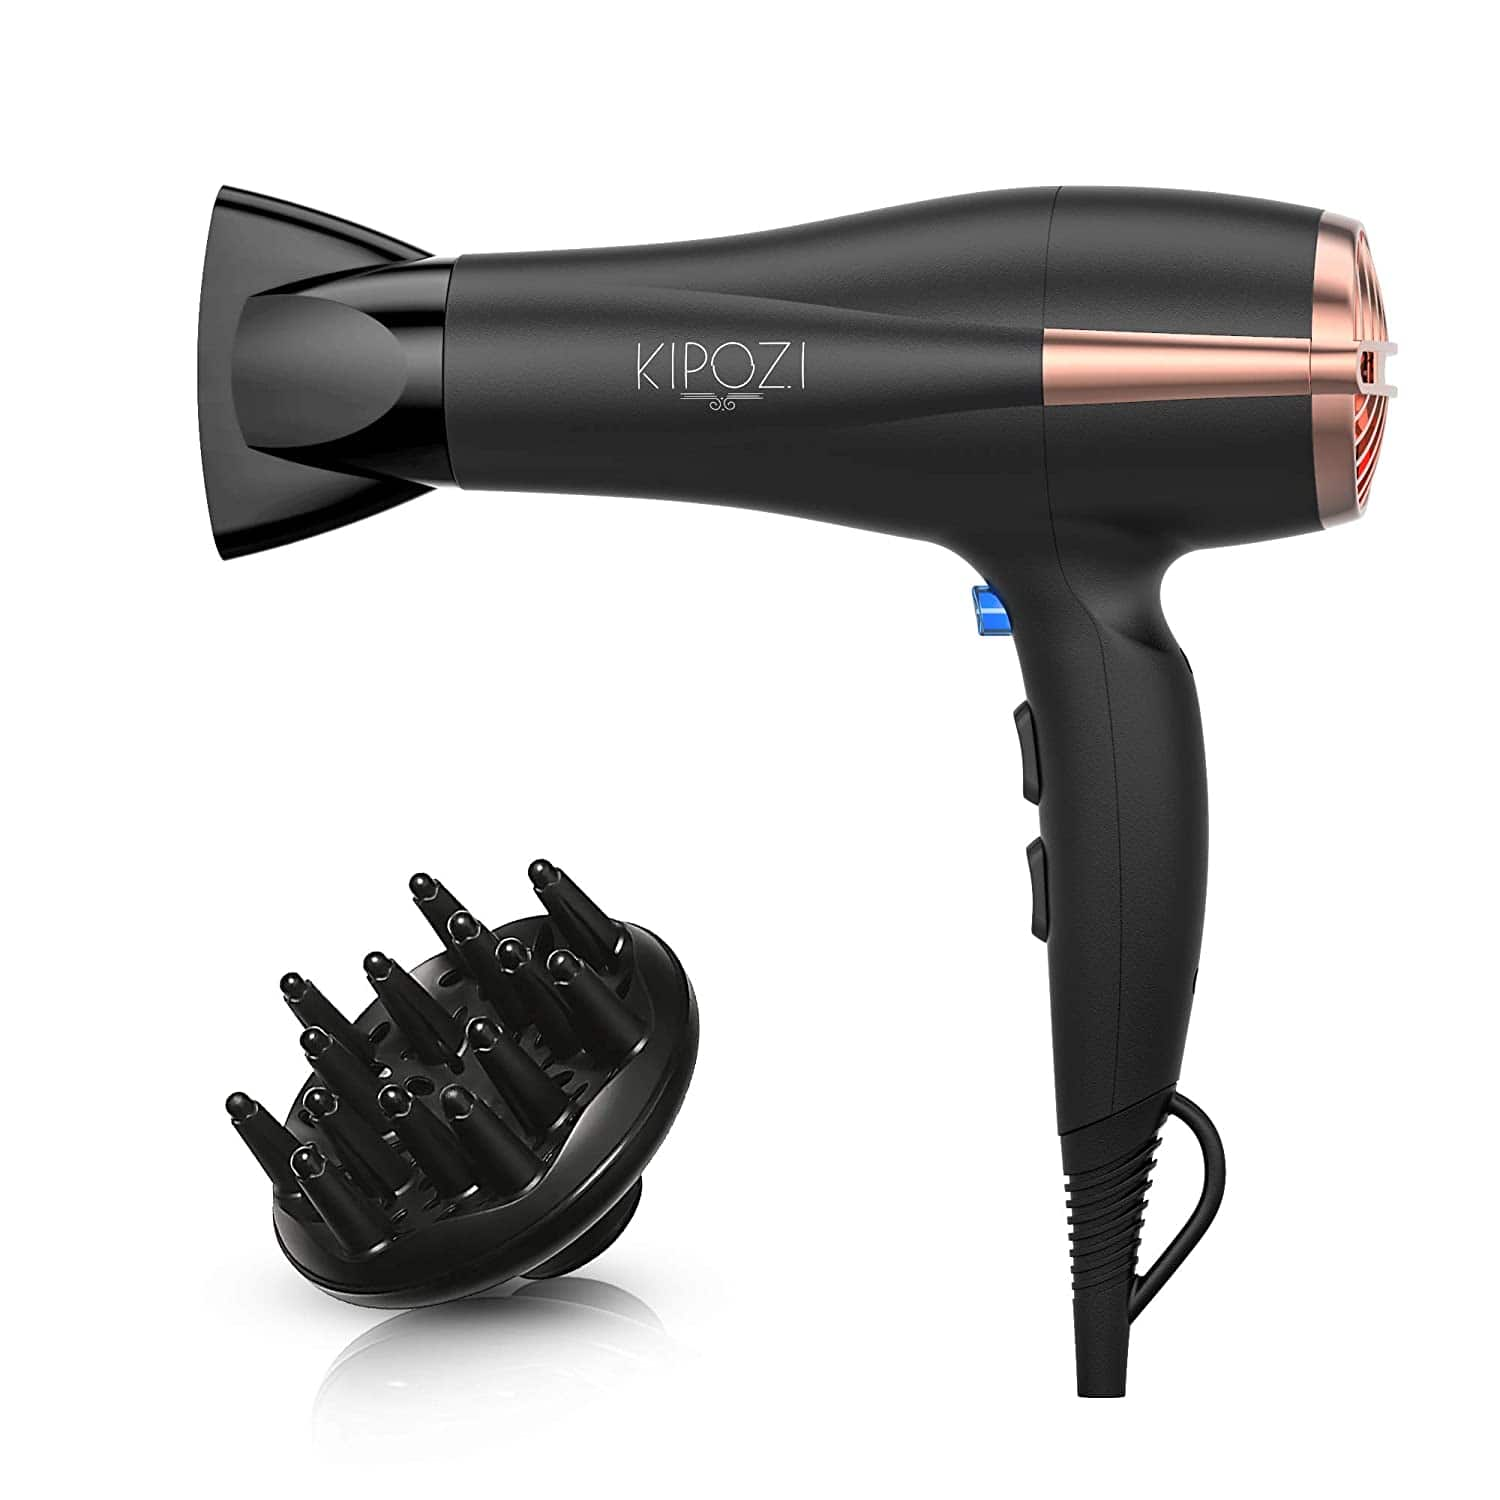 KIPOZI 1875W Lightweight Hair Dryer with Diffuser & Concentrator for $19.98 + FSSS